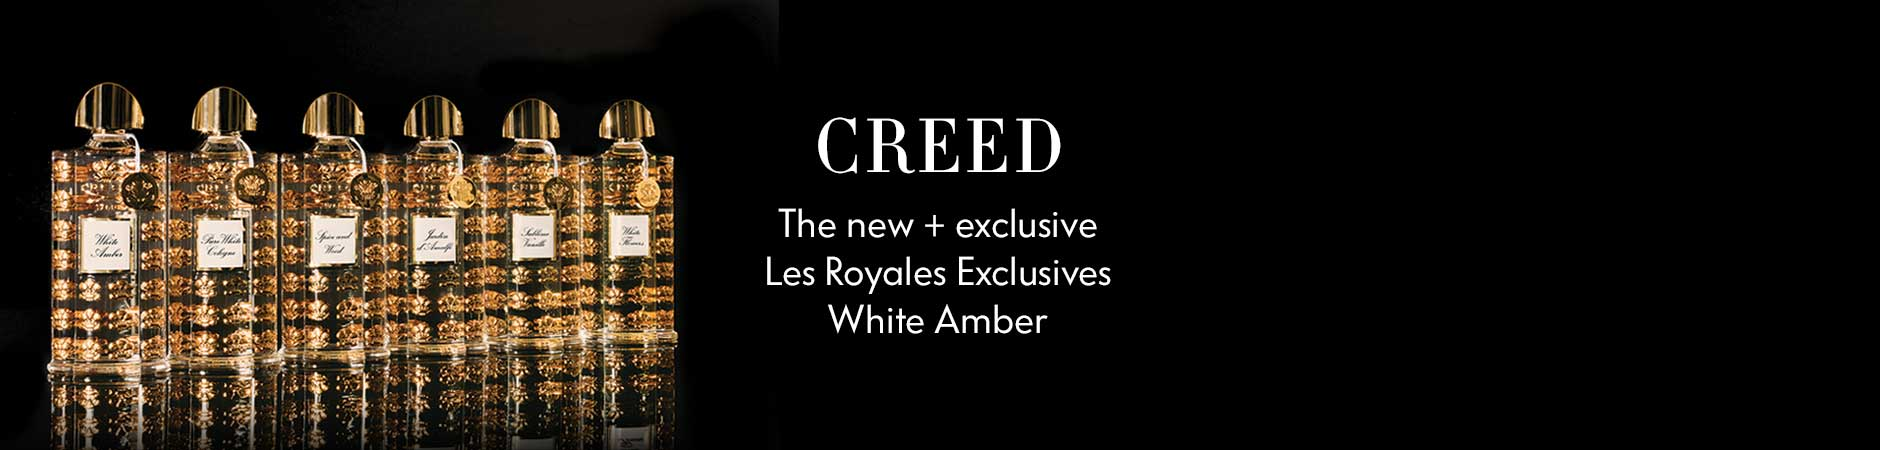 Creed - the new + exclusive Les Royales Exclusives white amber